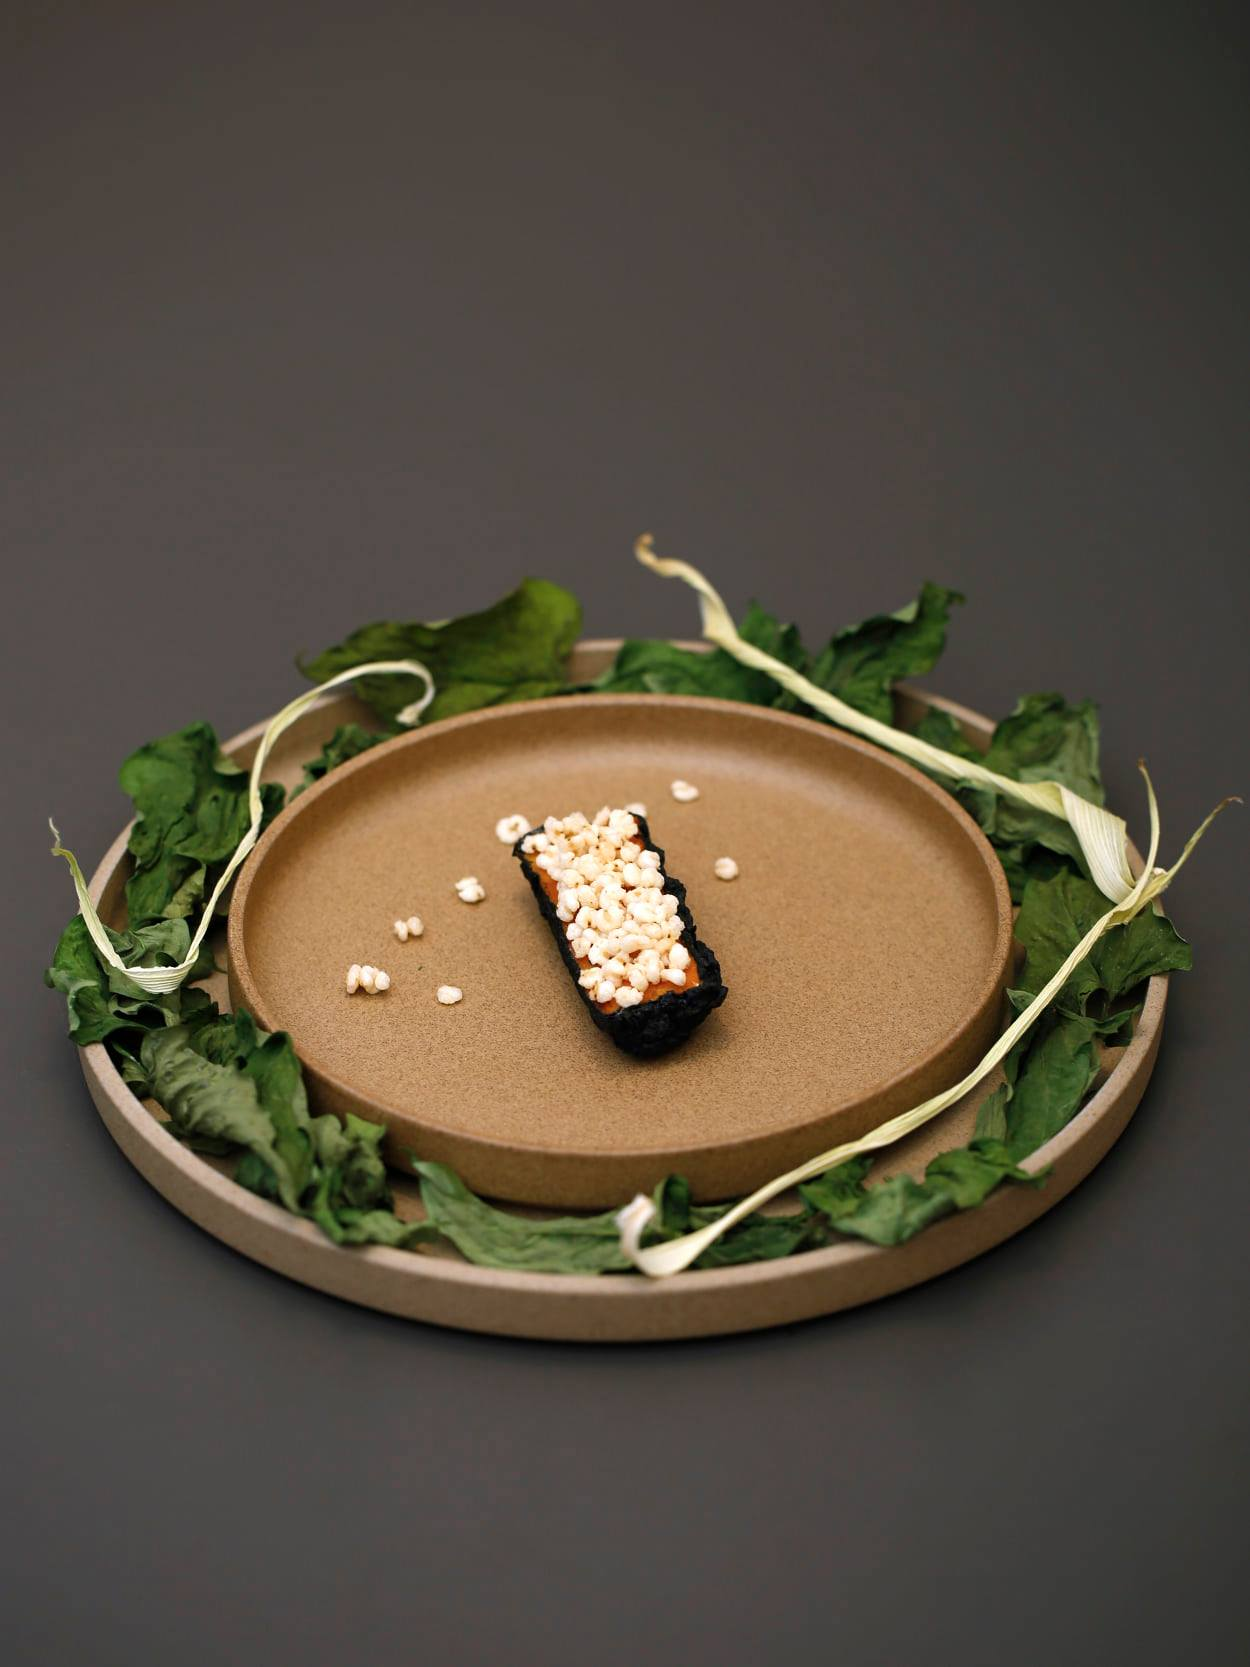 A piece of food, rectangular and topped with something resembling popcorn, at the center of a beige clay plate surrounded by leaves